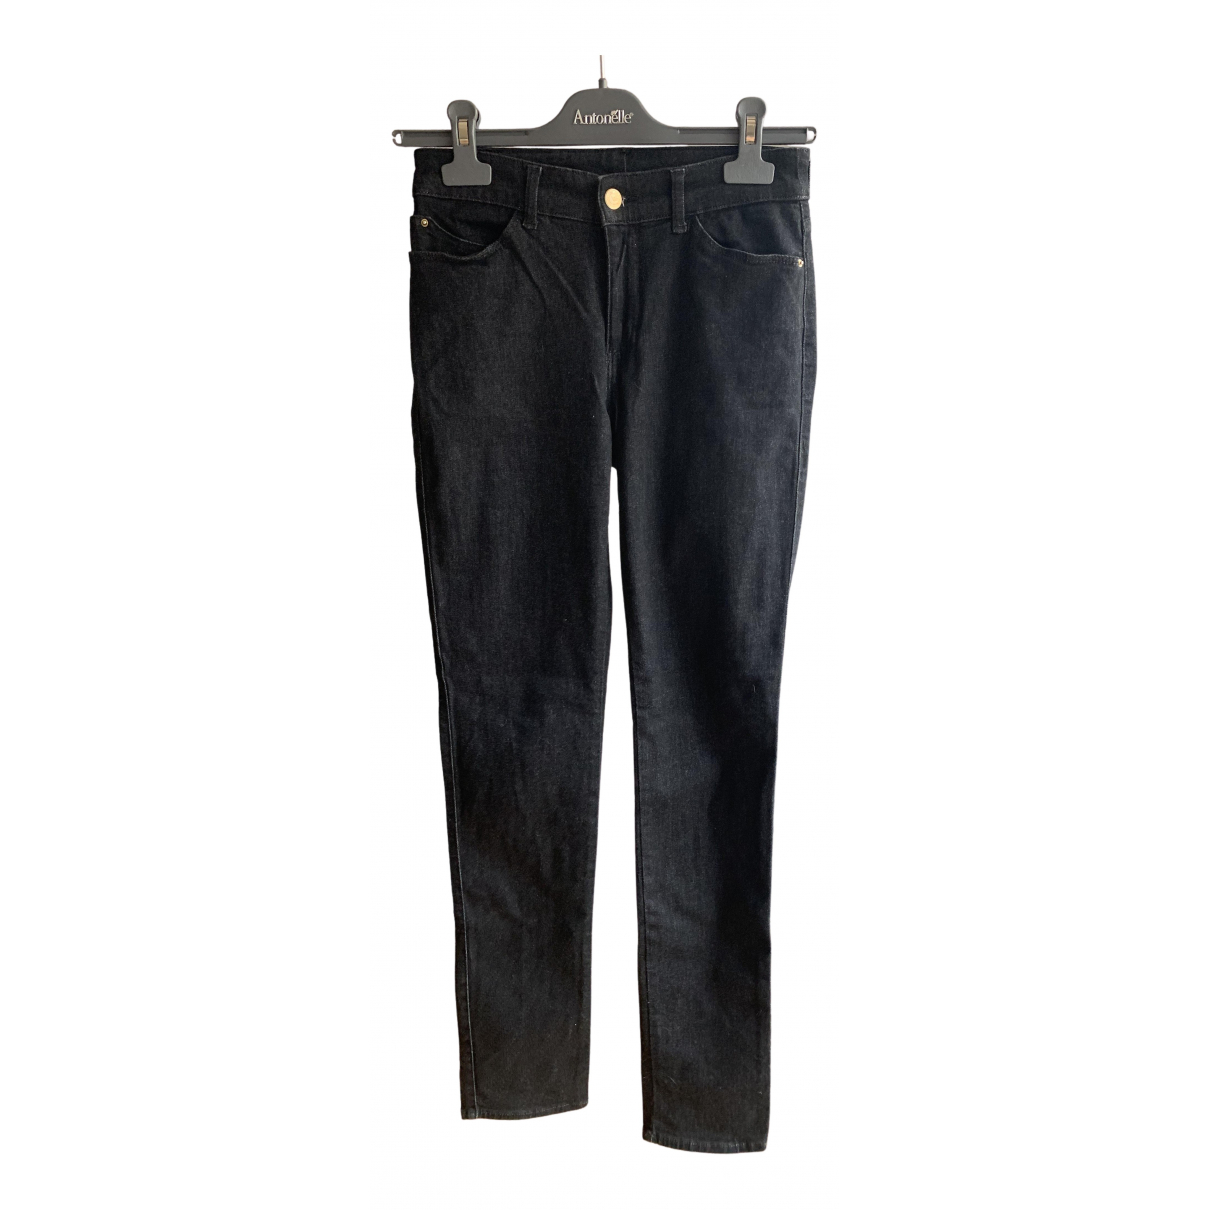 Emporio Armani N Anthracite Cotton Jeans for Women 26 US